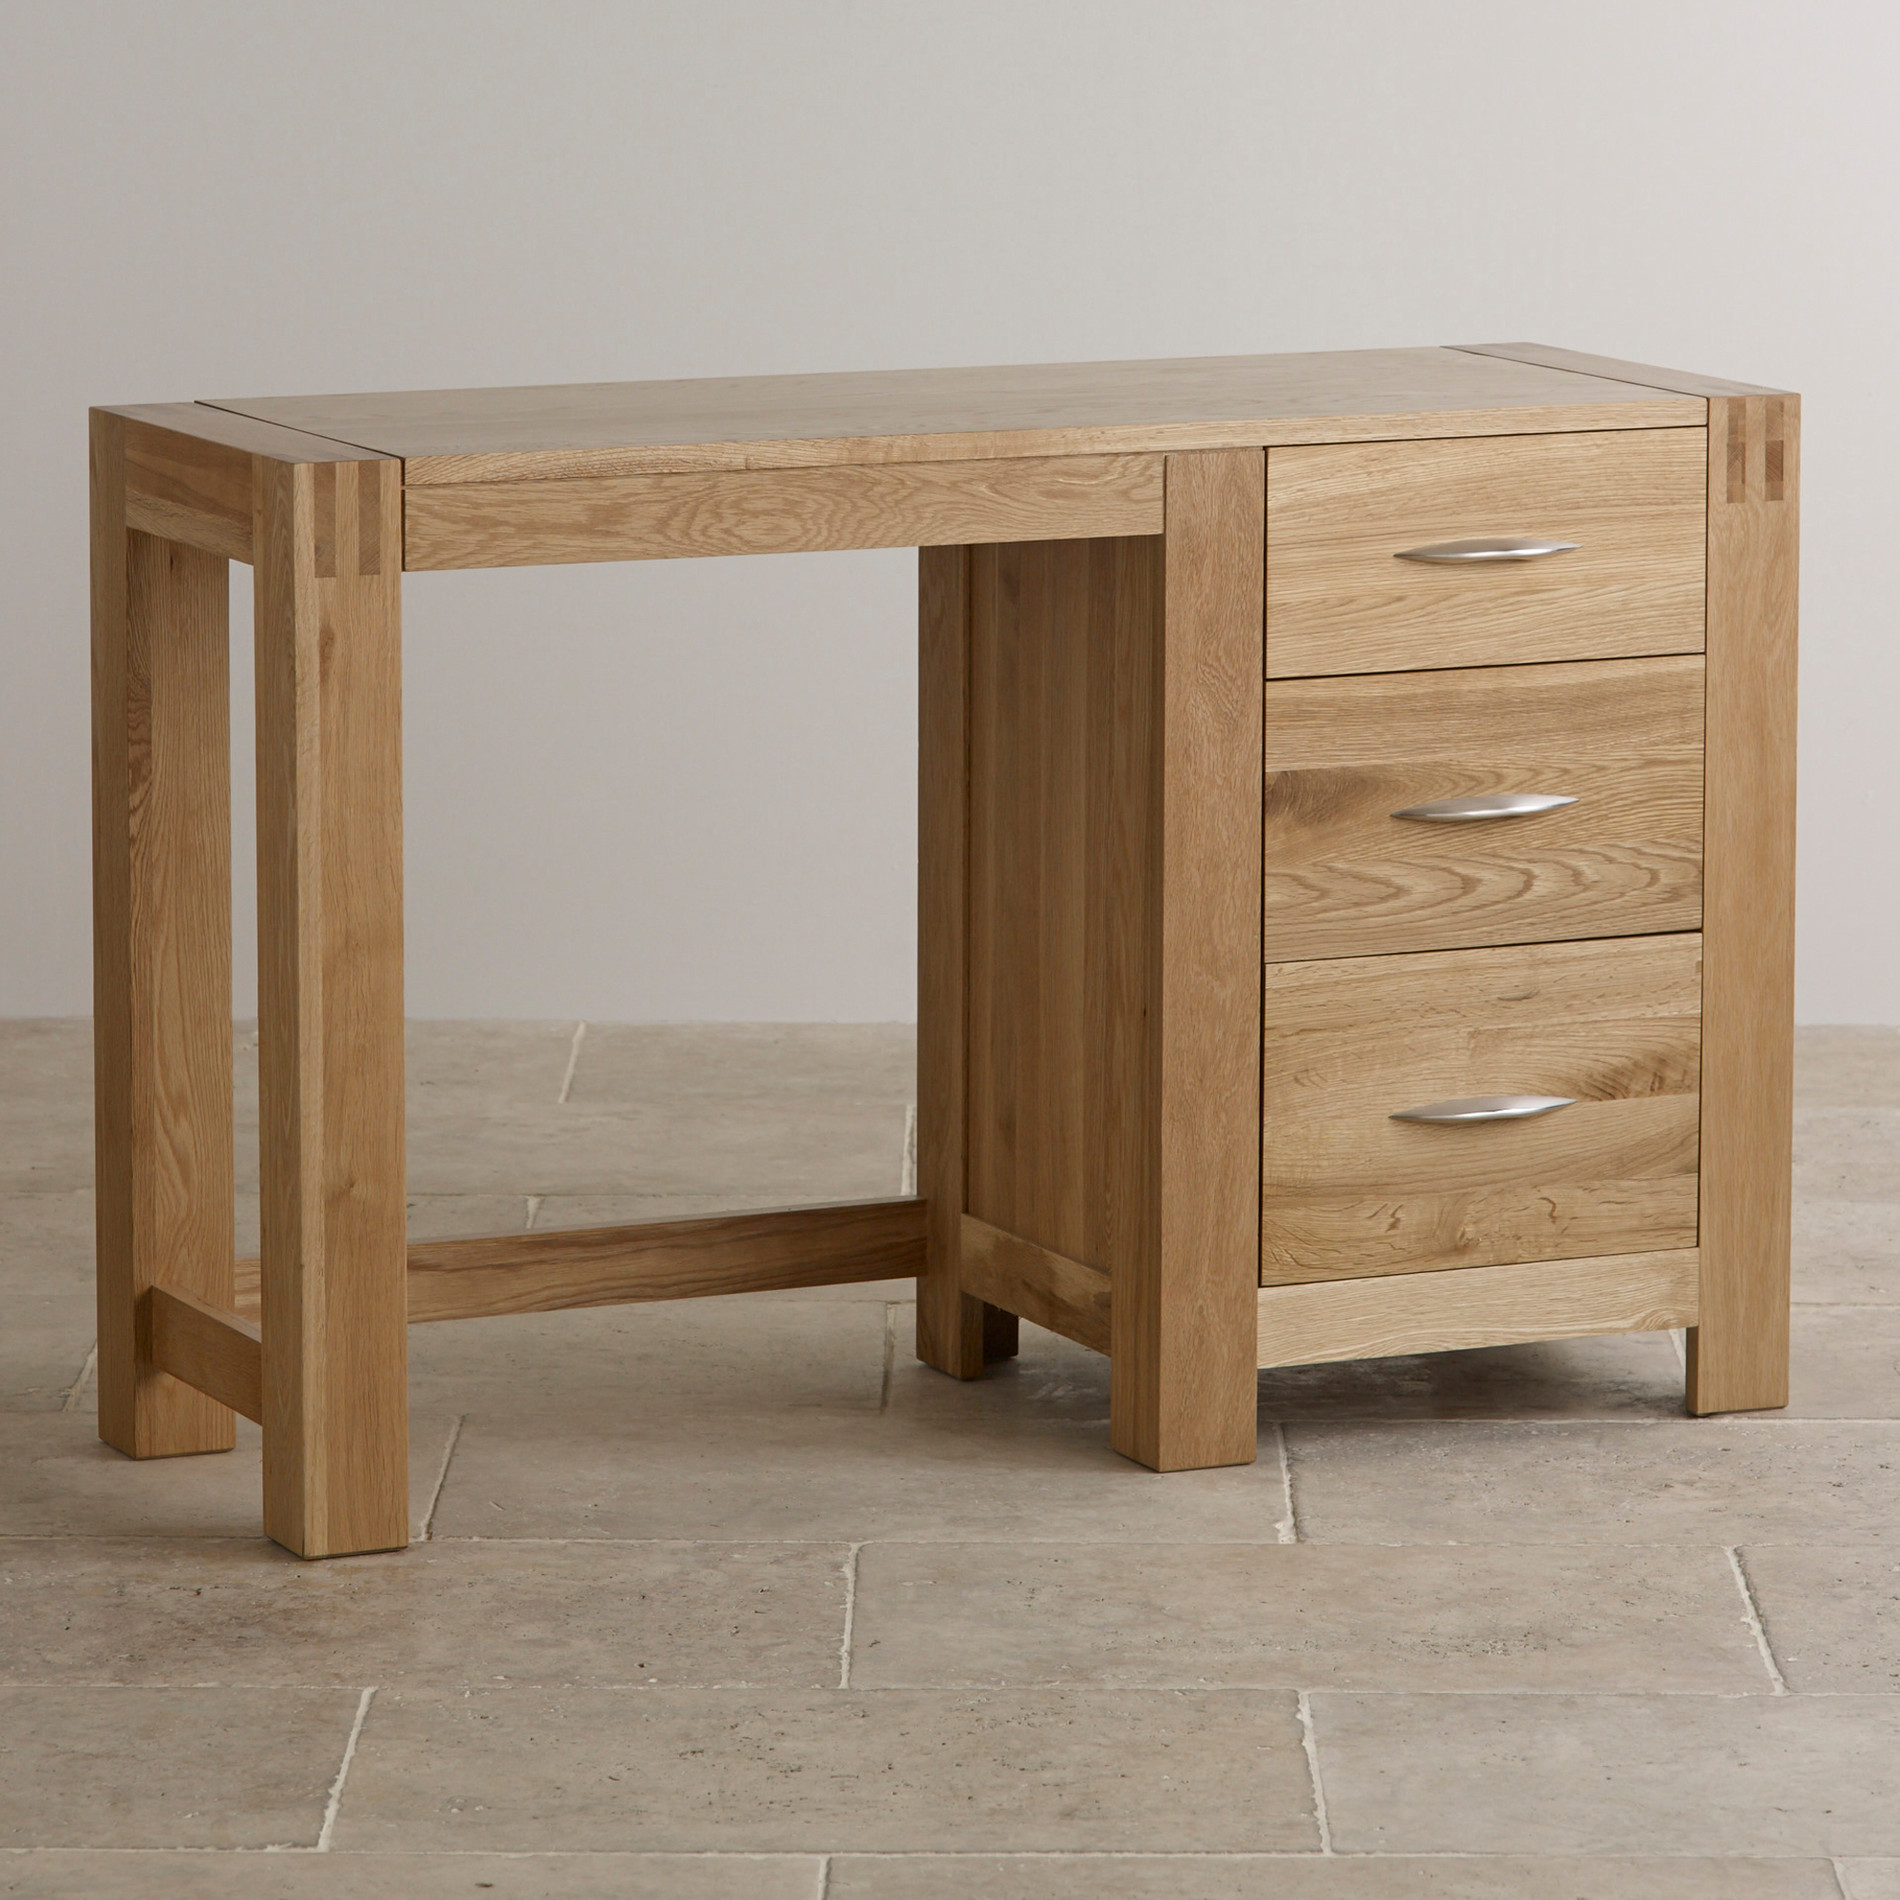 Alto dressing table in natural solid oak oak furniture land for Dining table dressing